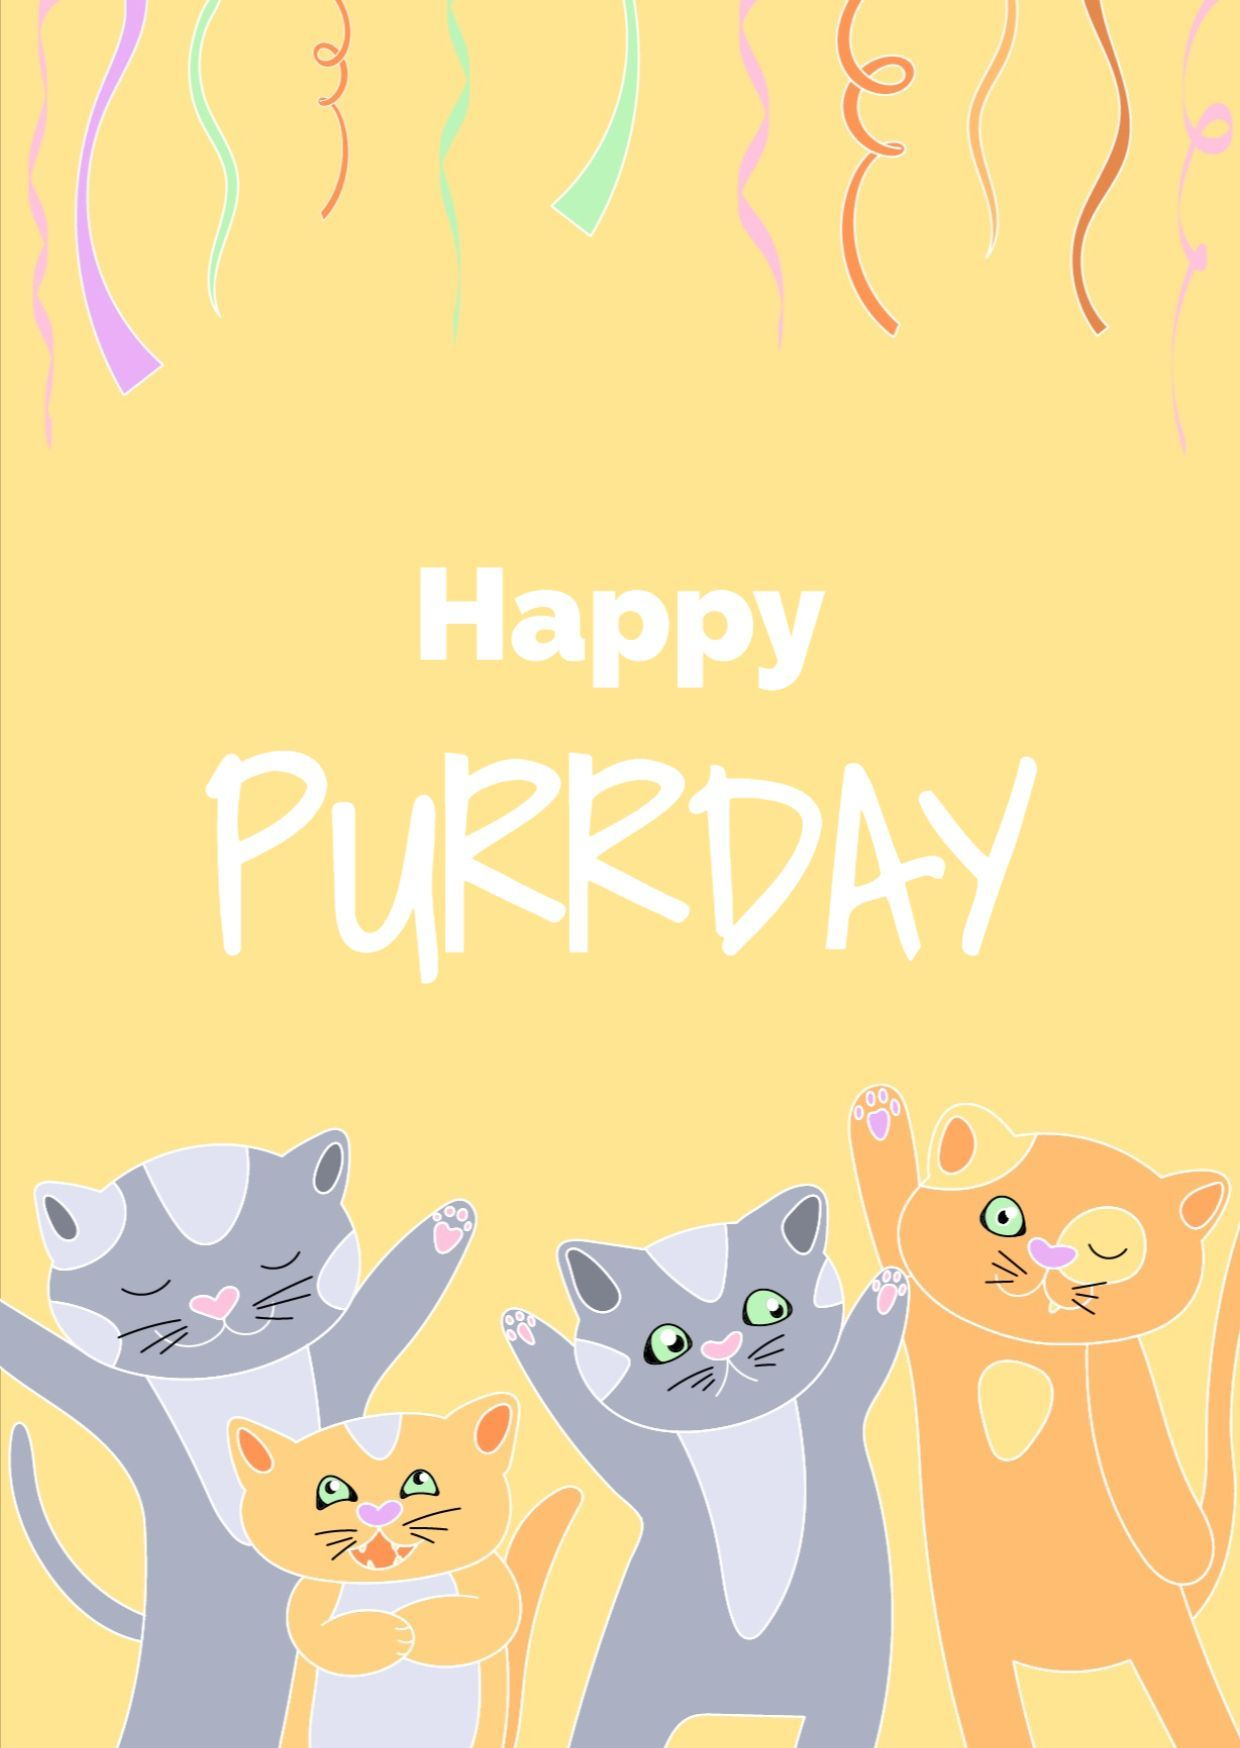 A Funny And Happy Greeting Card Template For A Birthday Design Features Hand Drawn Ca Cat Birthday Greetings Cat Birthday Greeting Card Birthday Card Template